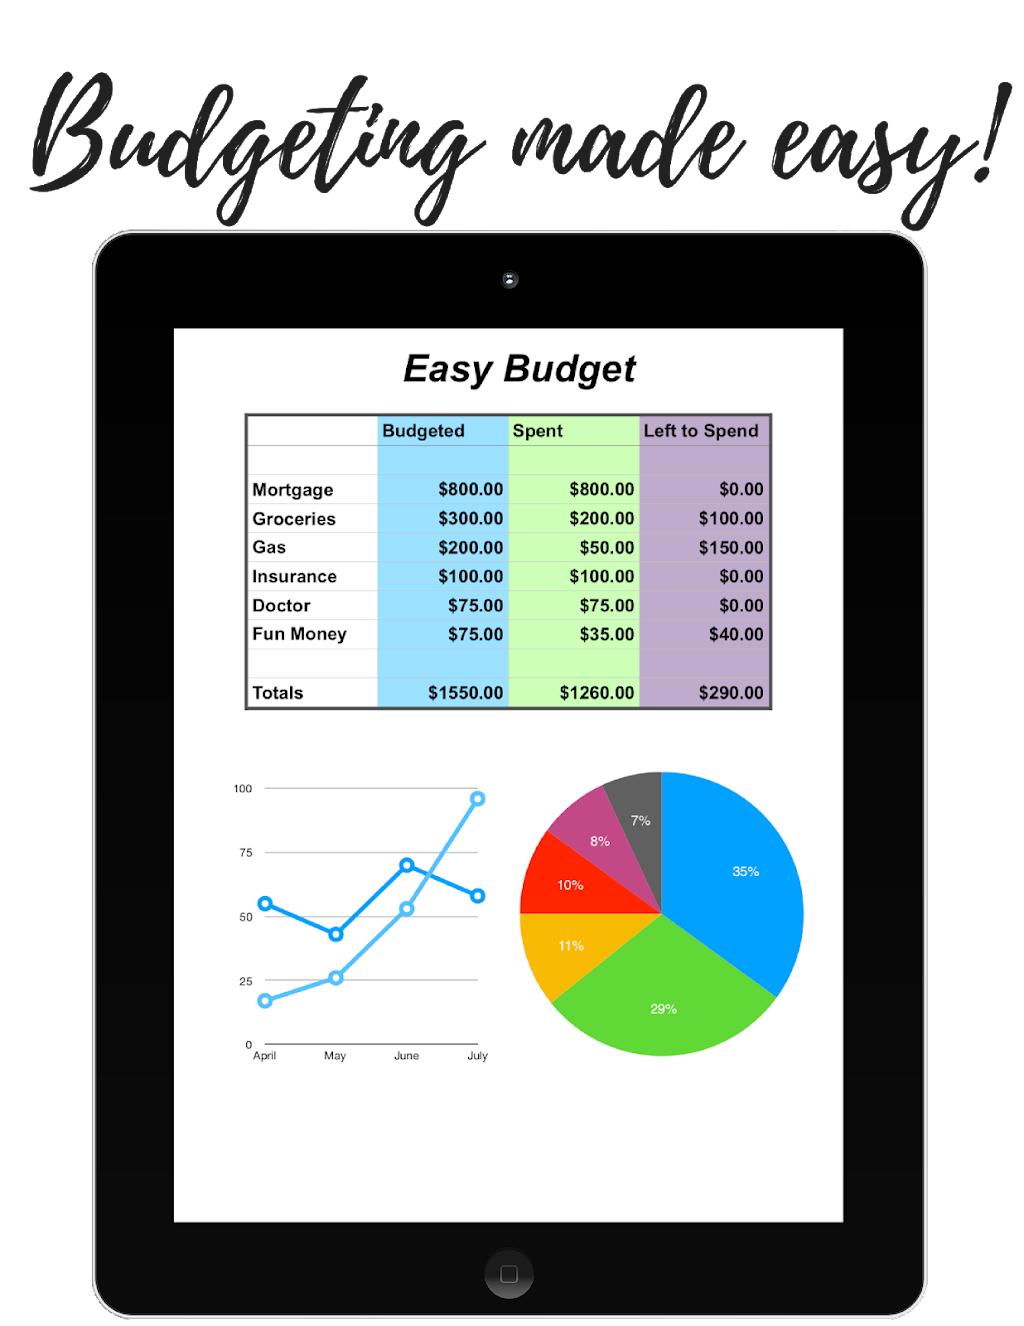 download your free easy budget spreadsheet